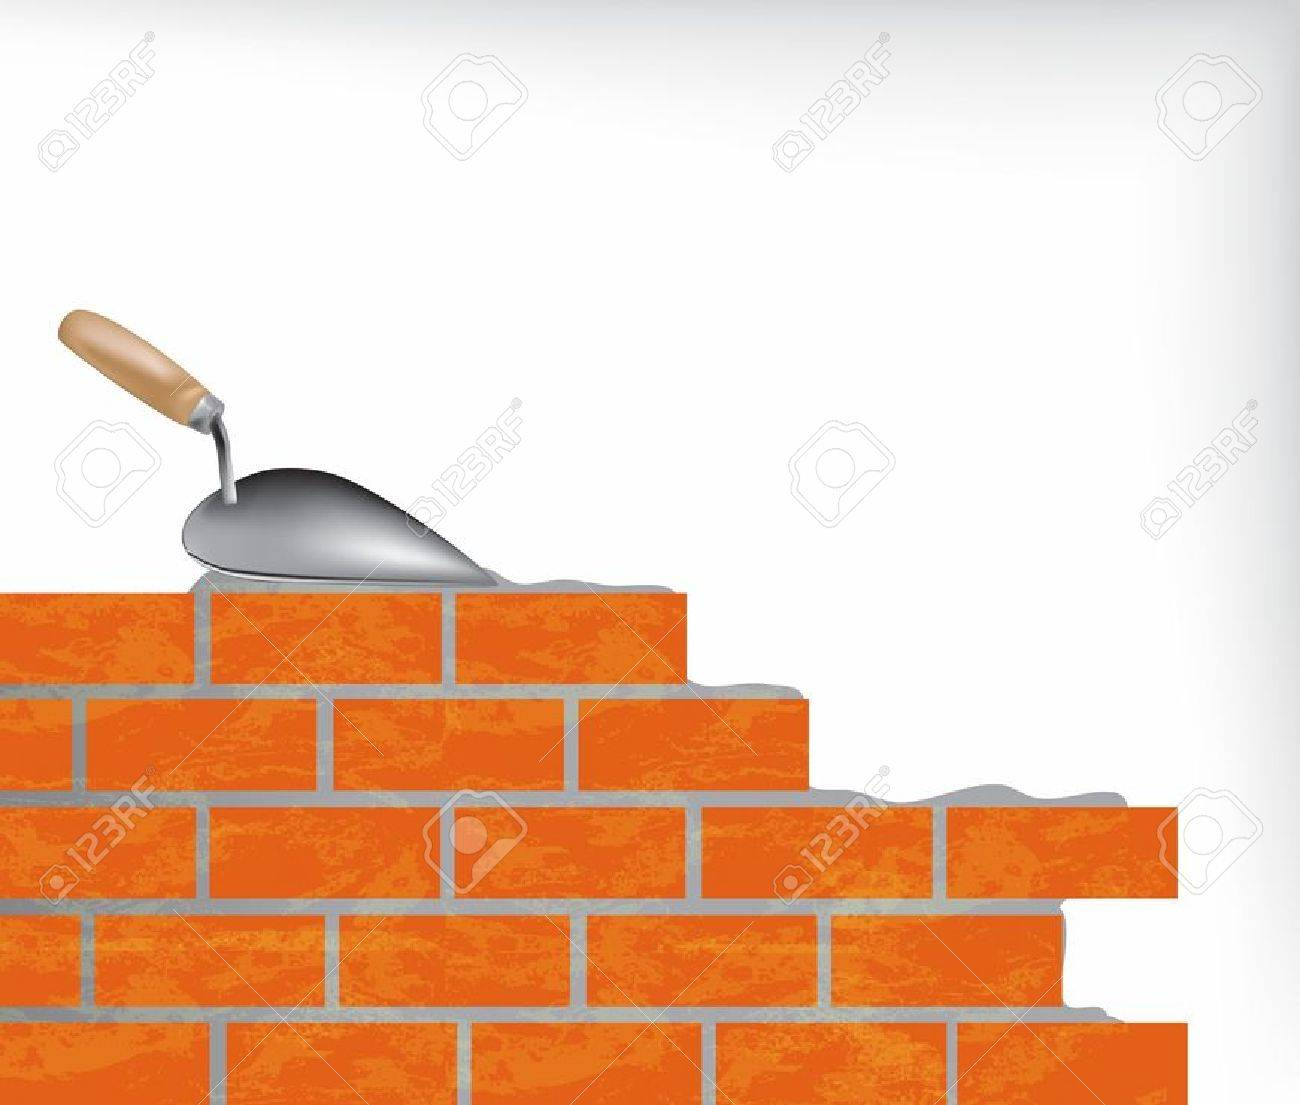 brick wall and trowel illustration royalty free cliparts vetores e